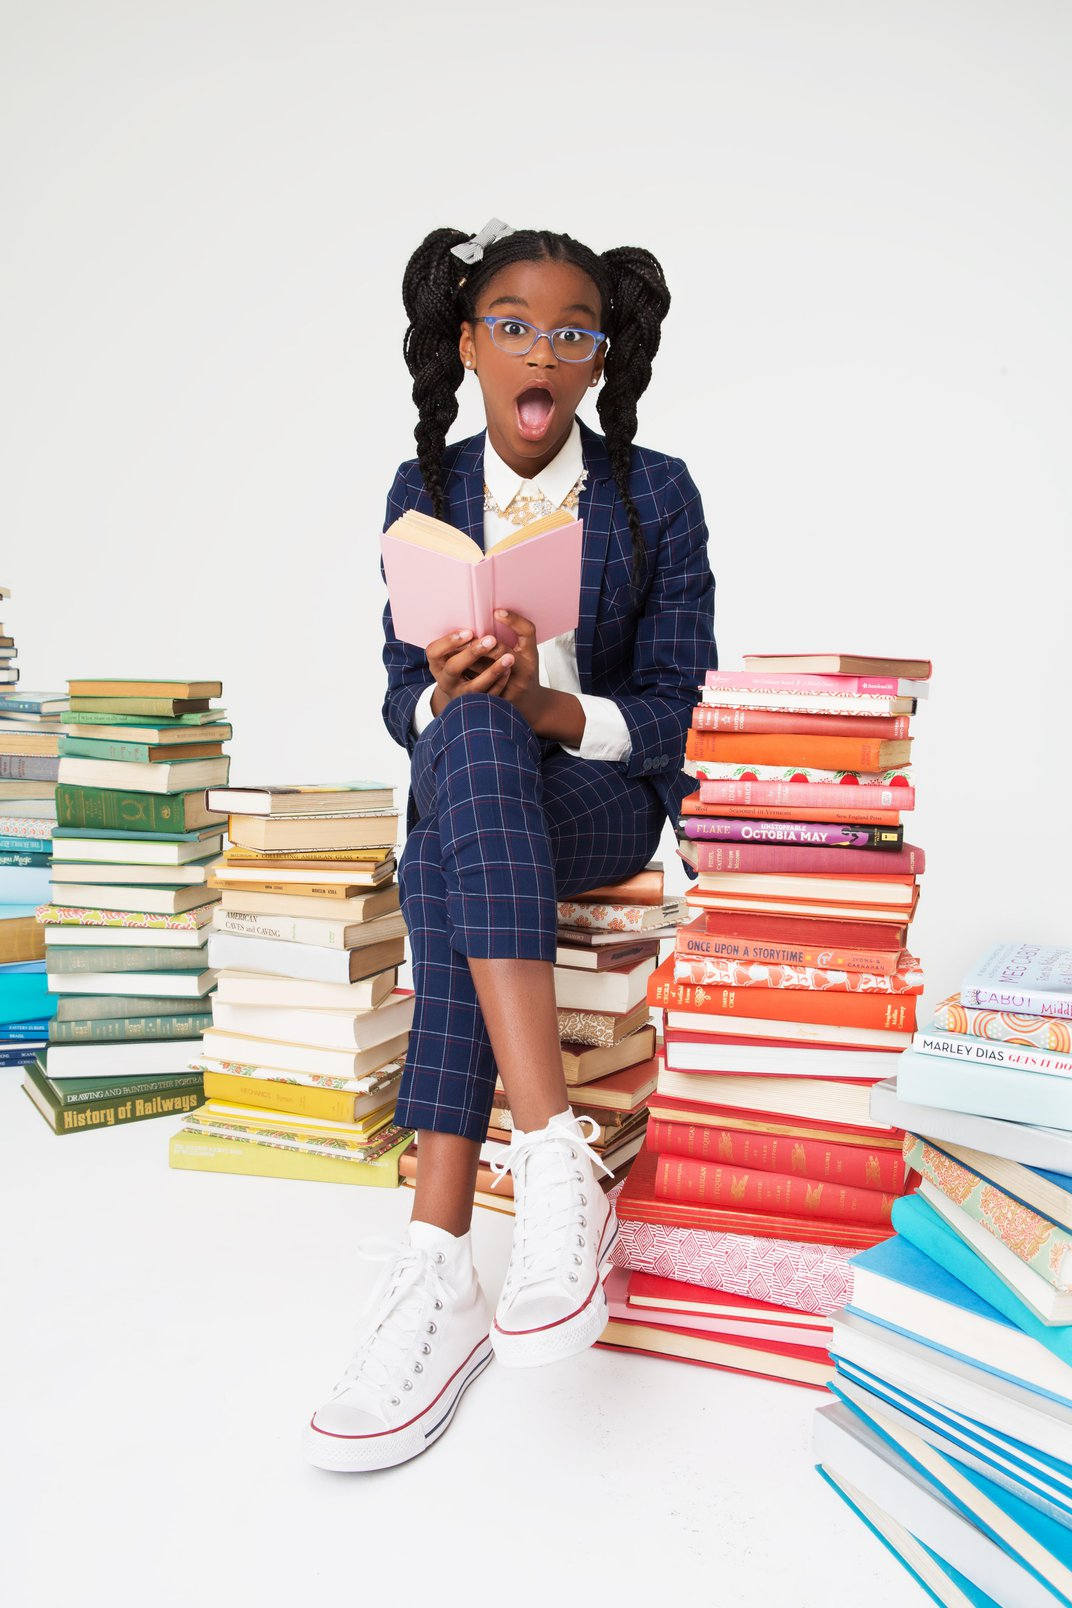 Marley Dias' Inspirational Goal to Collect Books About Girls of Color